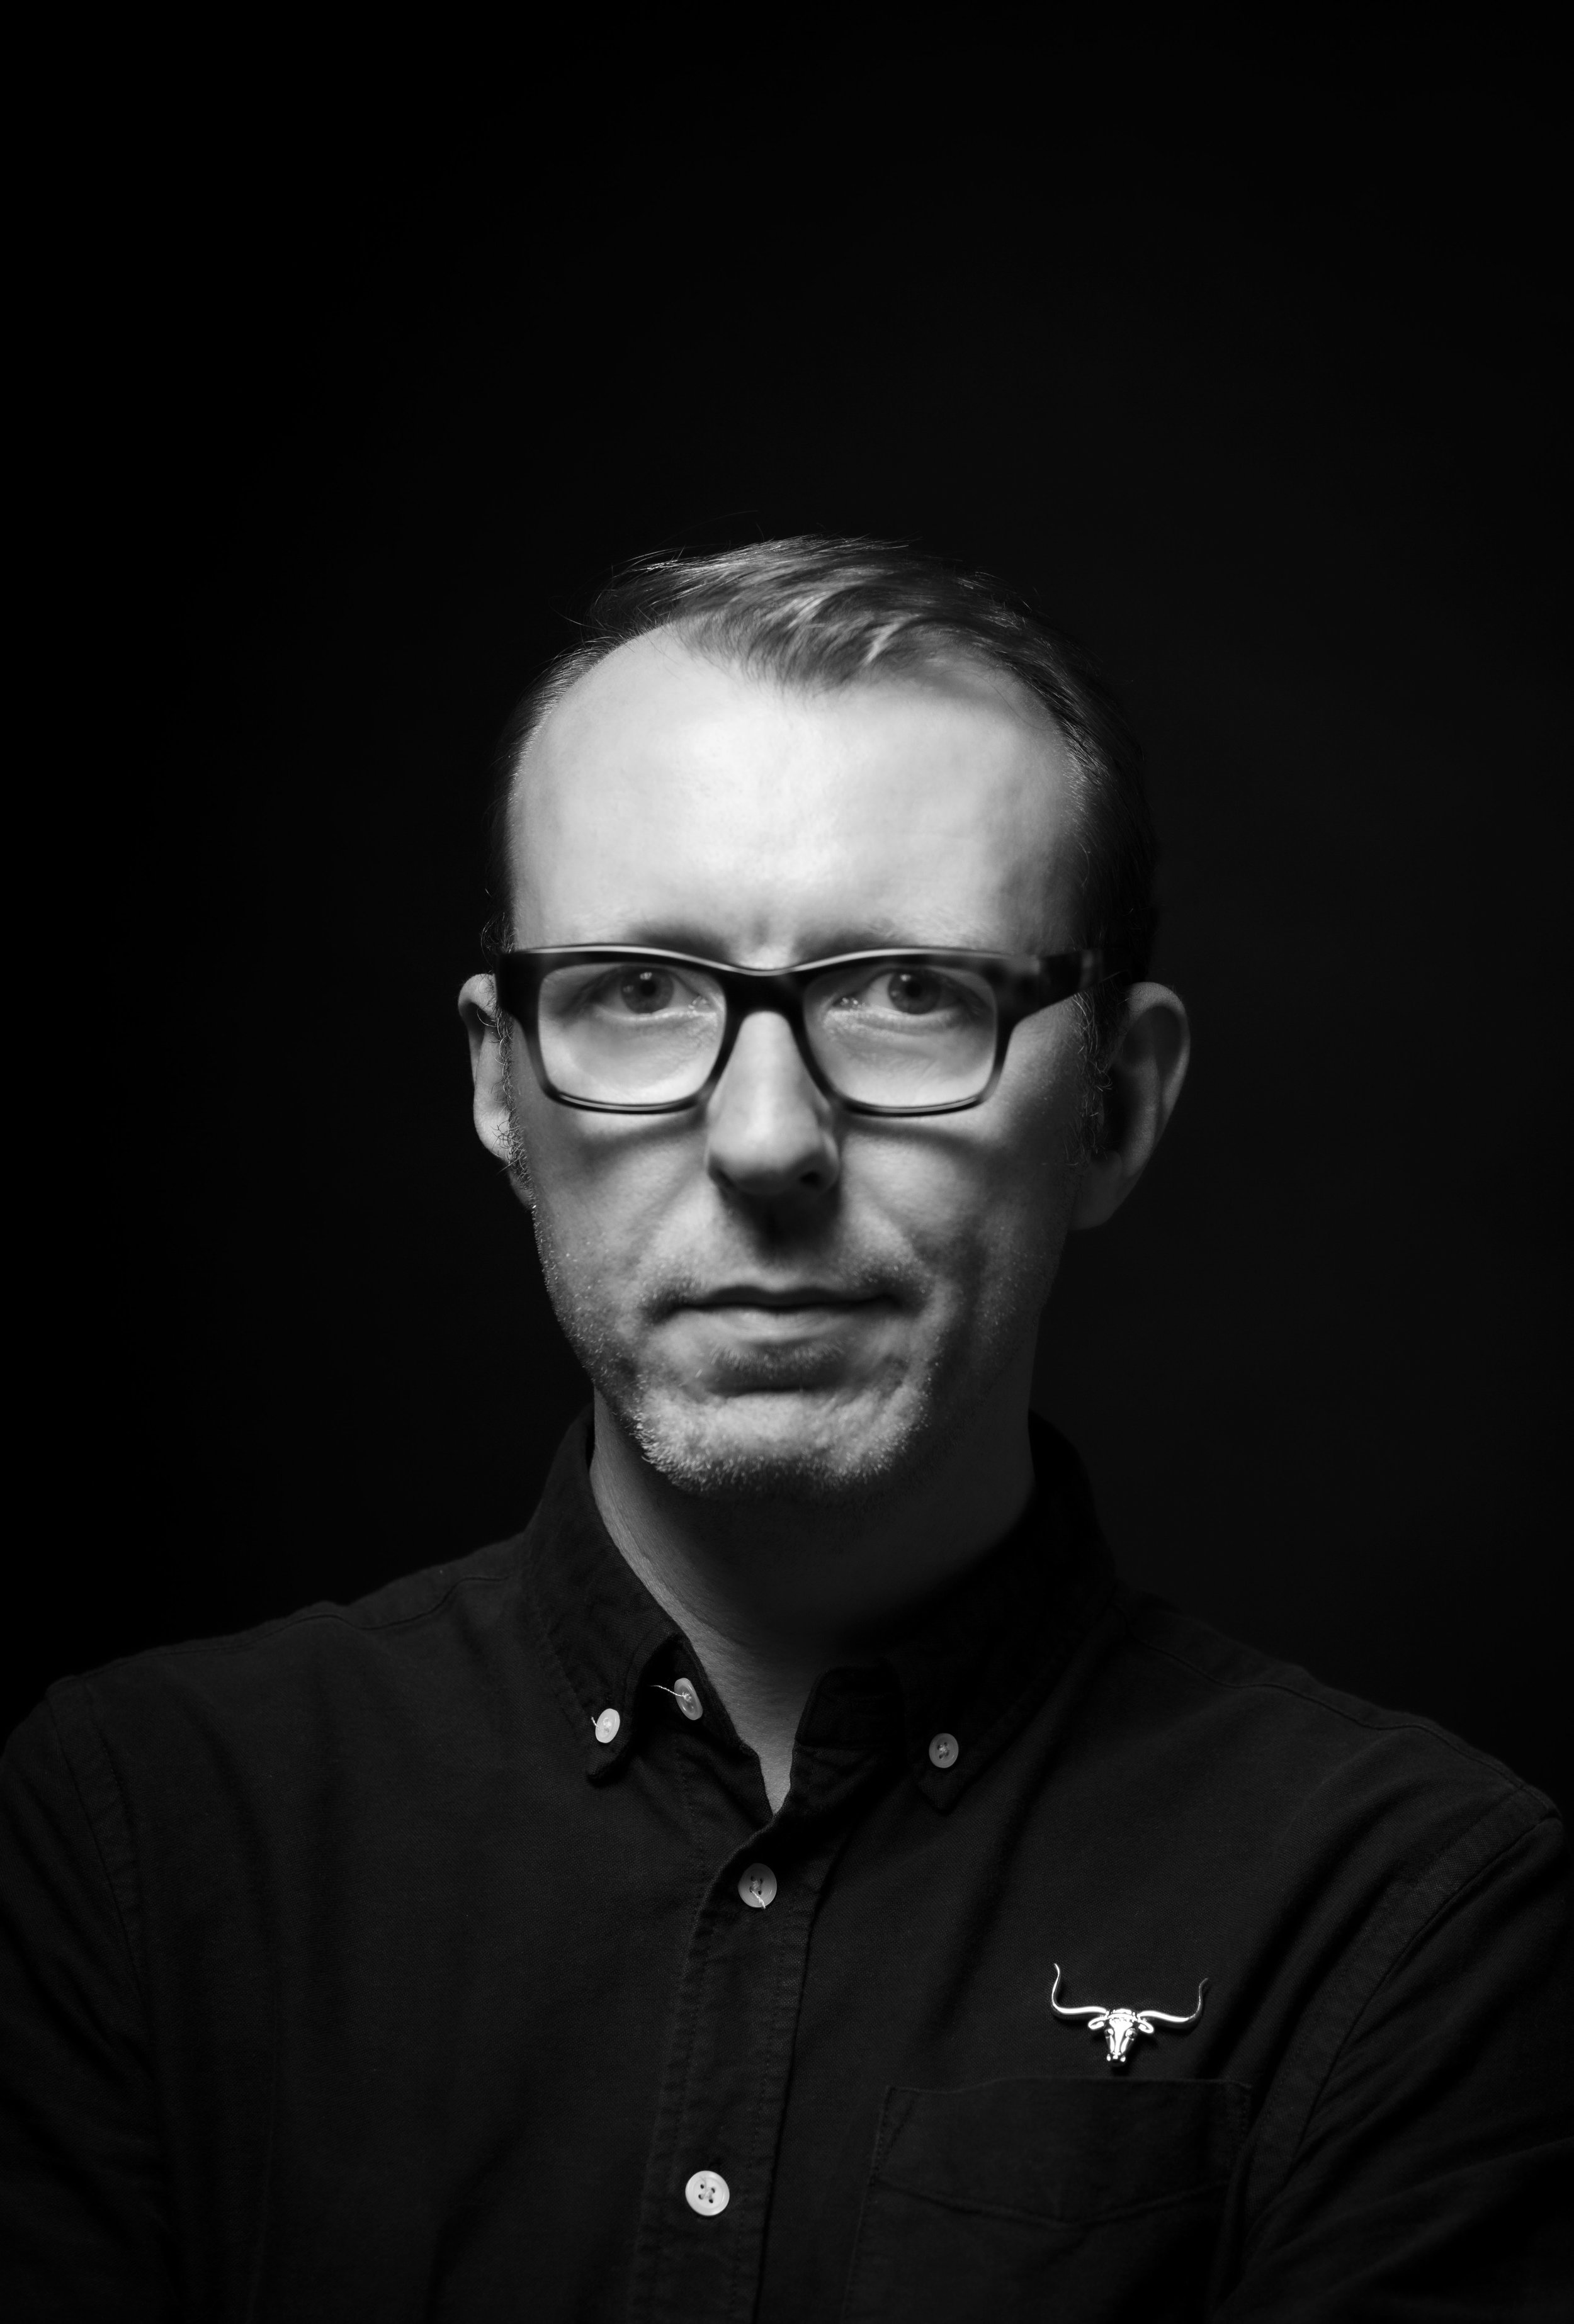 """Ian Henry Simmonds - """"Having small touches of colour makes it more colourful than having the whole thing in colour."""" - Dieter Rams""""I get obsessed by little nerdy things in my corner that no one else is interested in."""" - Bjork""""Automation is Deadly"""" - Jenny Holzer, Truisms"""